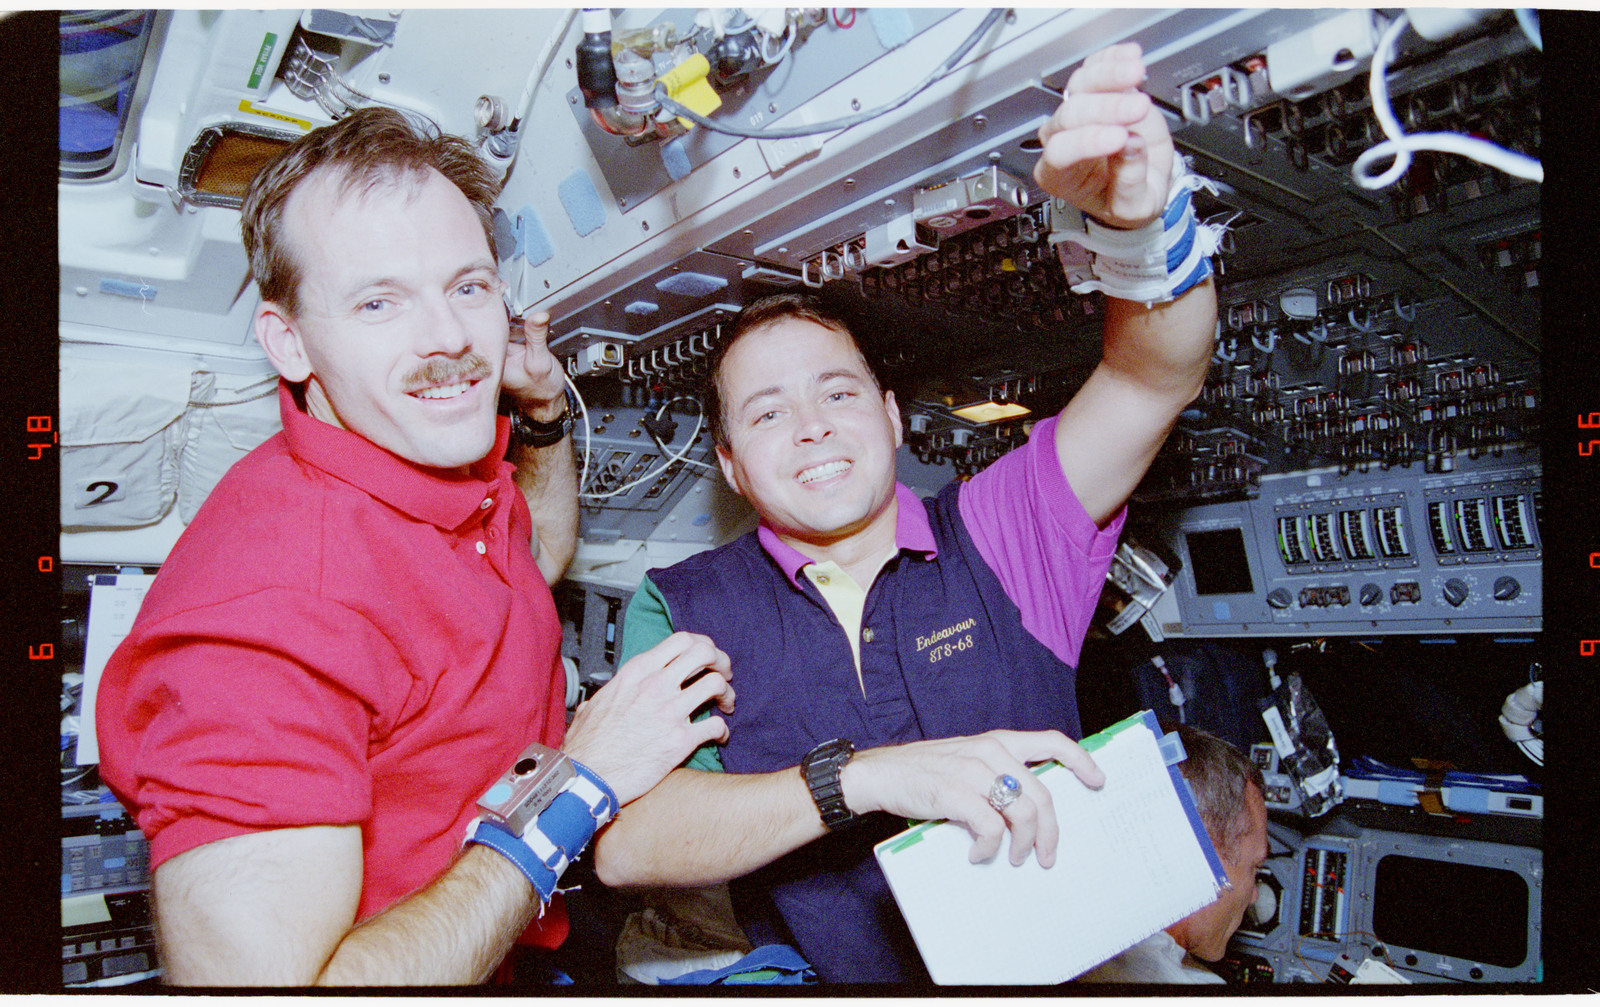 STS068-38-010 - STS-068 - STS-68 crewmembers  on the flight deck of the Endeavour